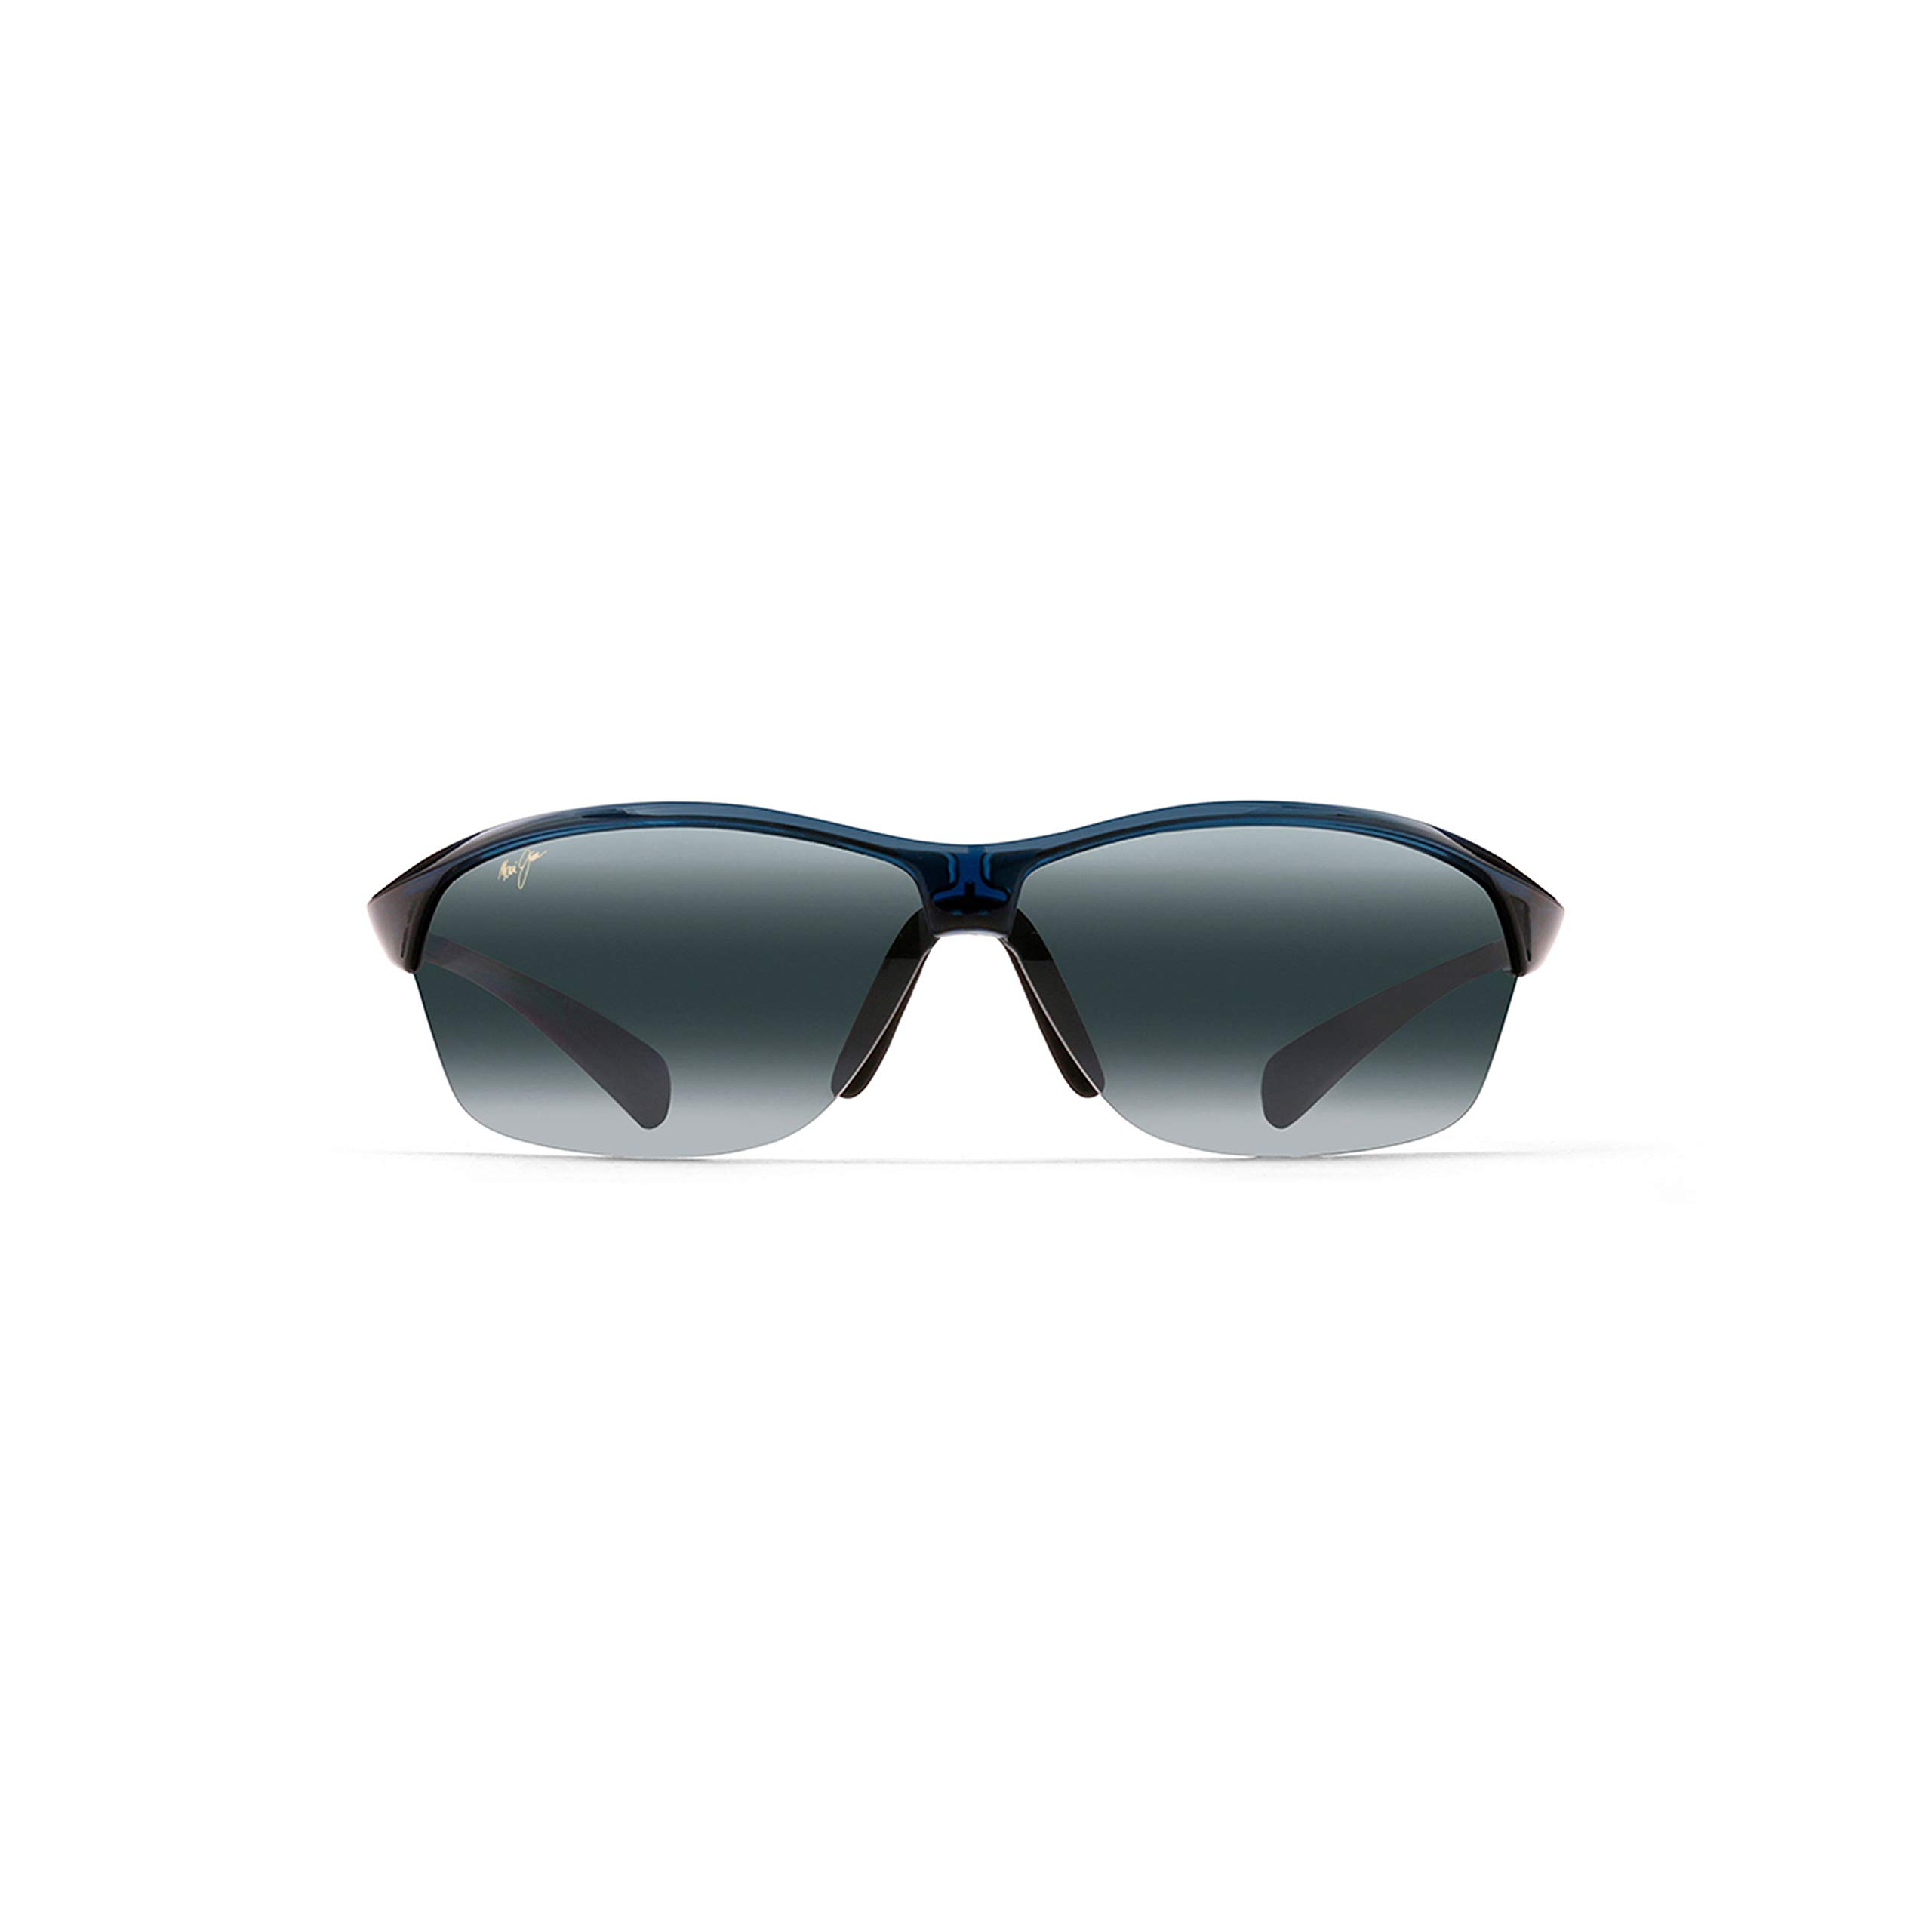 9b1a9ae9119 Best Rated in Sunglasses   Helpful Customer Reviews - Amazon.com